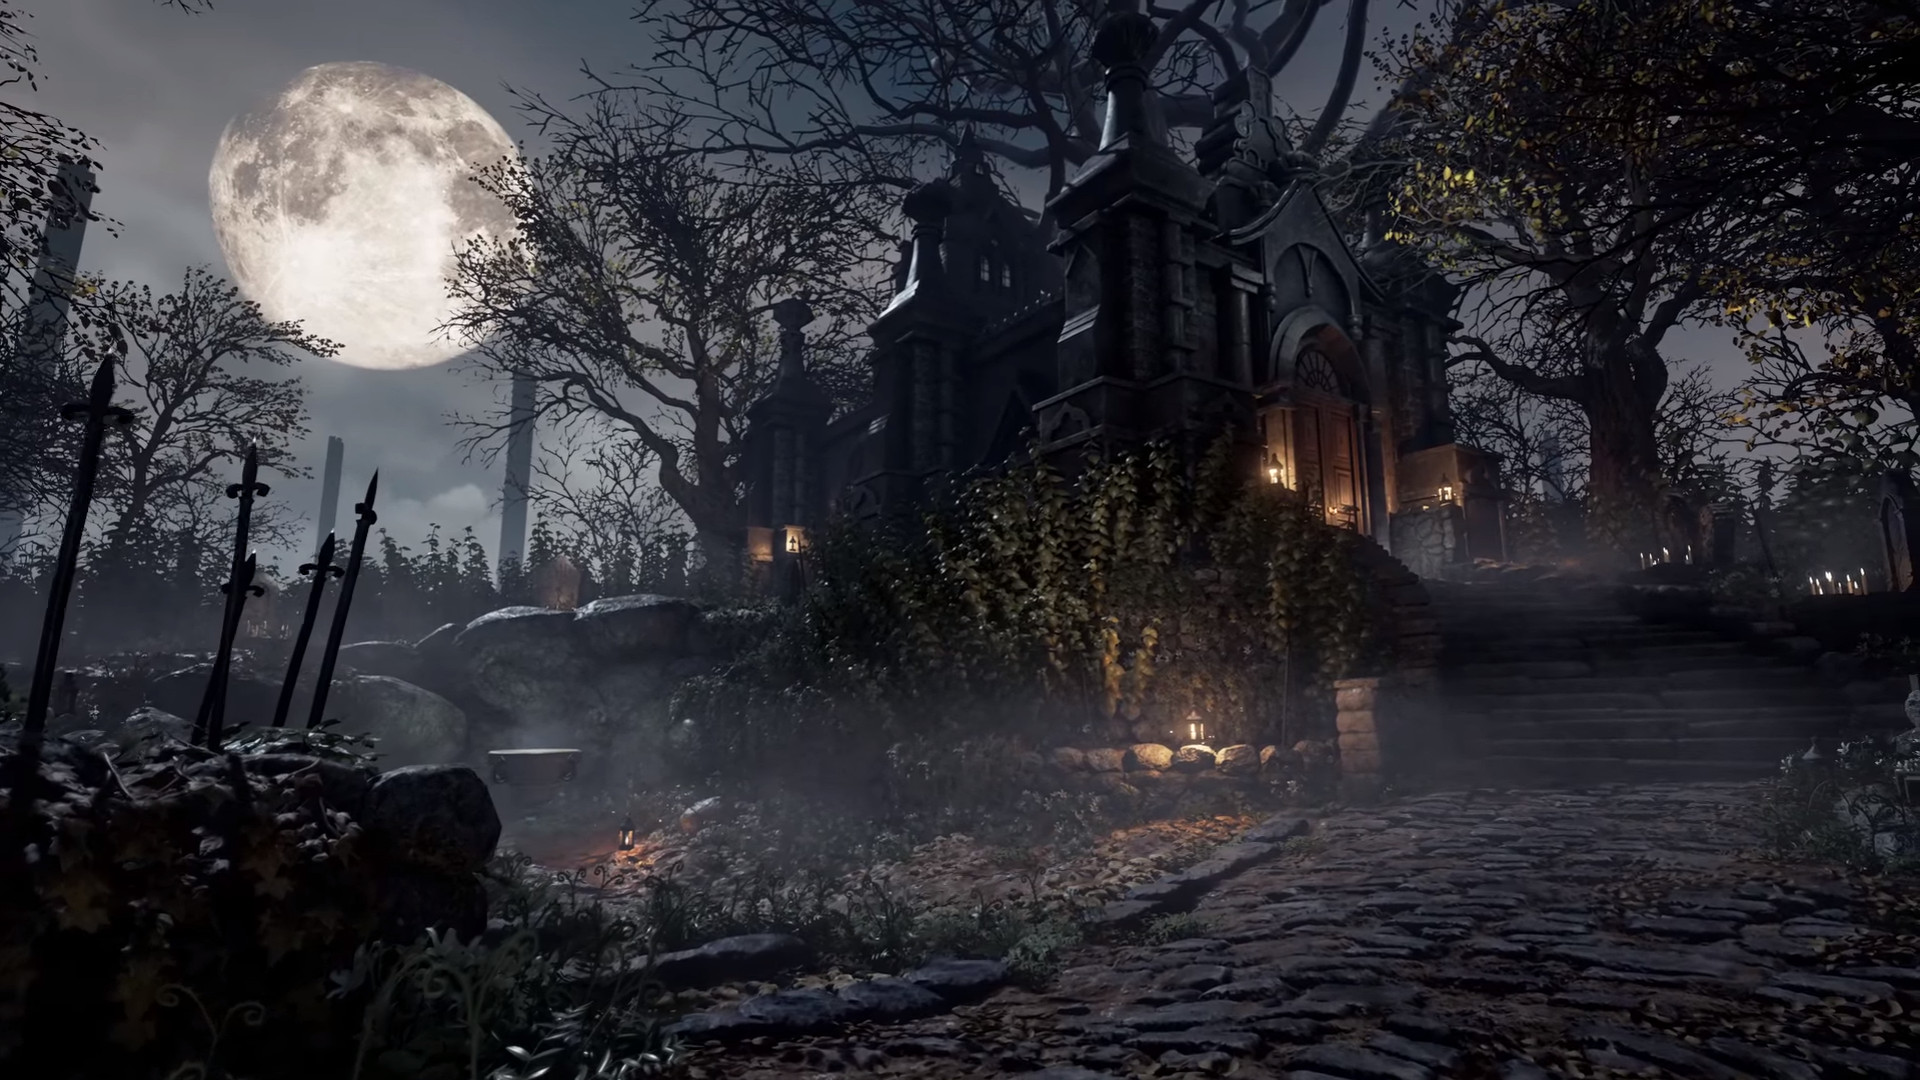 If you thought Bloodborne looked good before, see it rebuilt